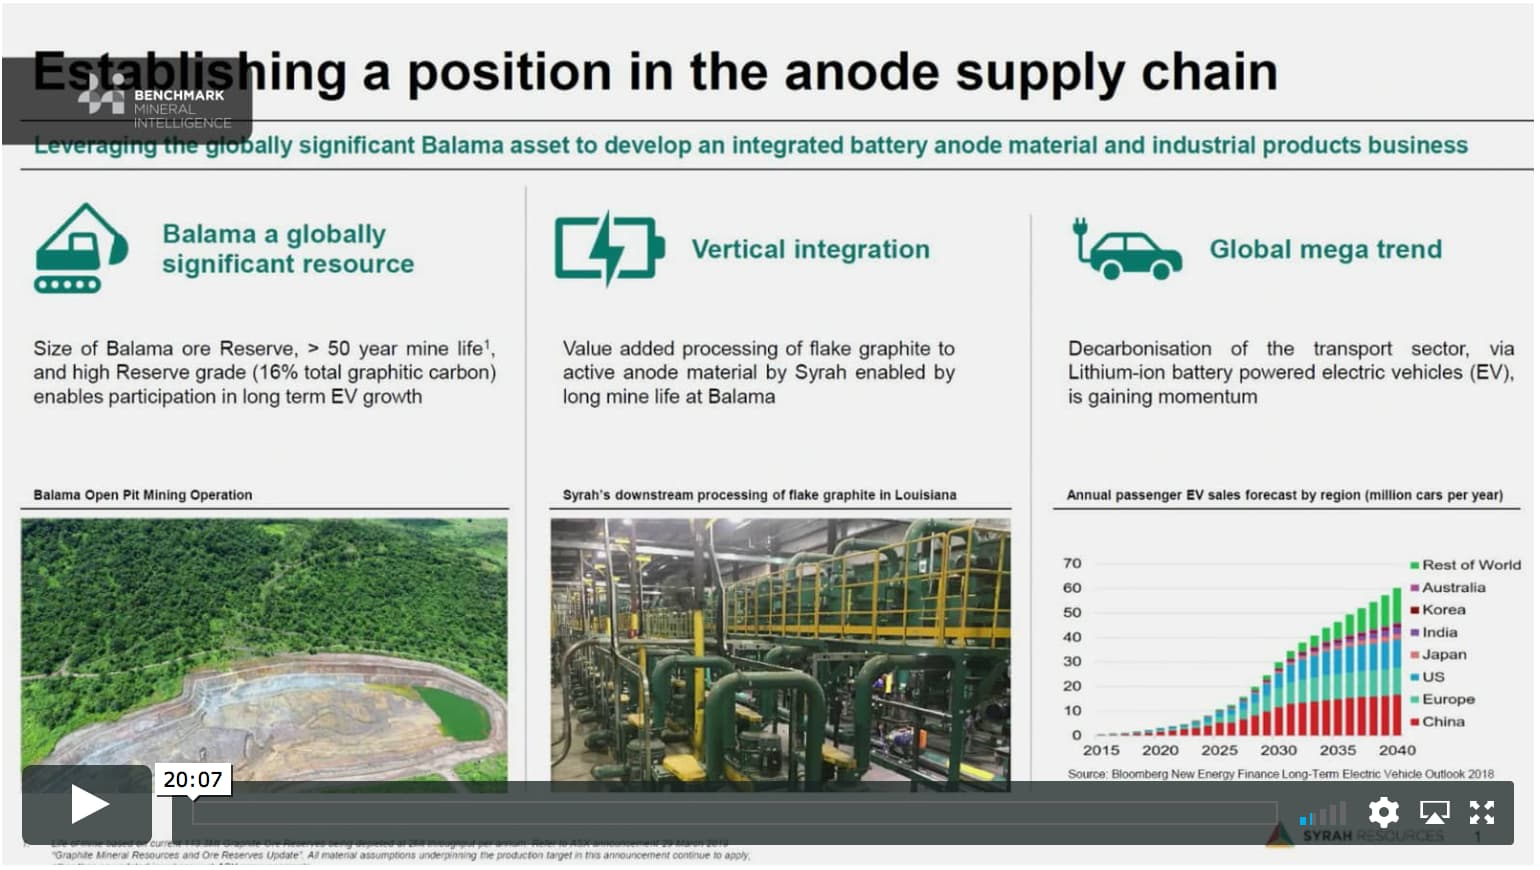 Strengthening the anode supply chain